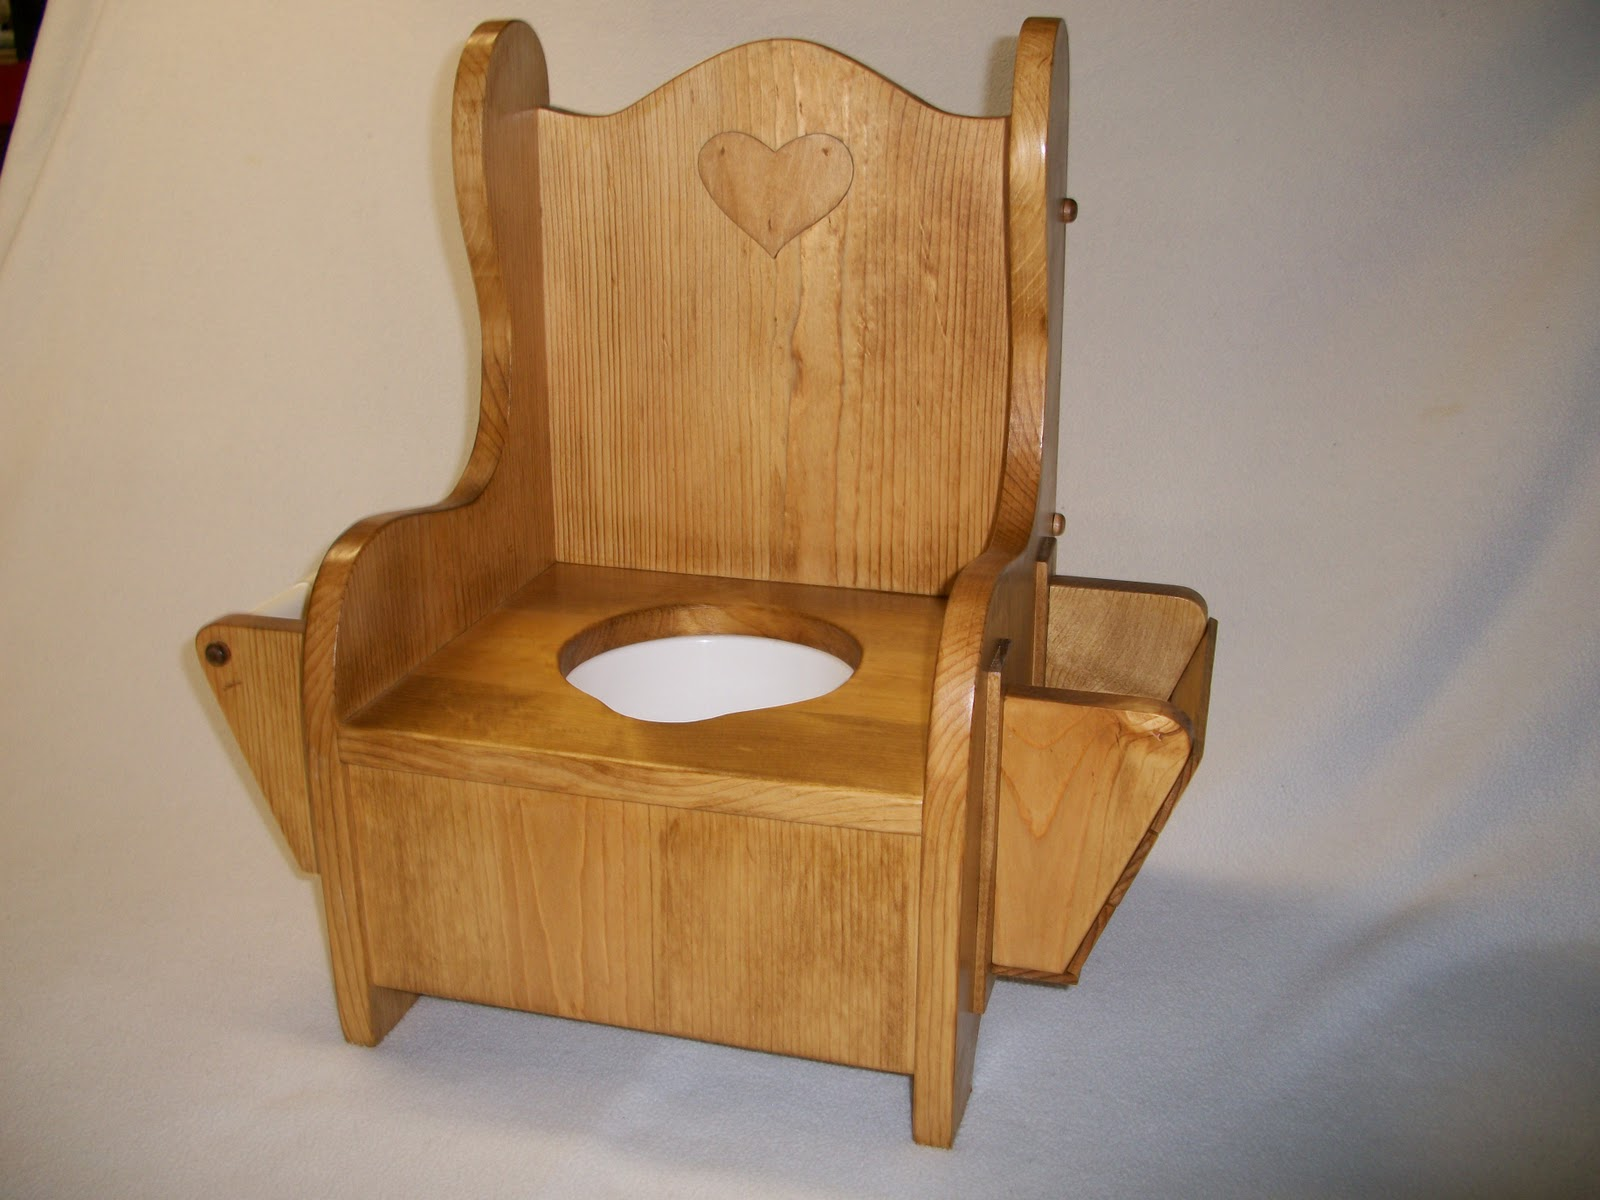 wooden potty chair